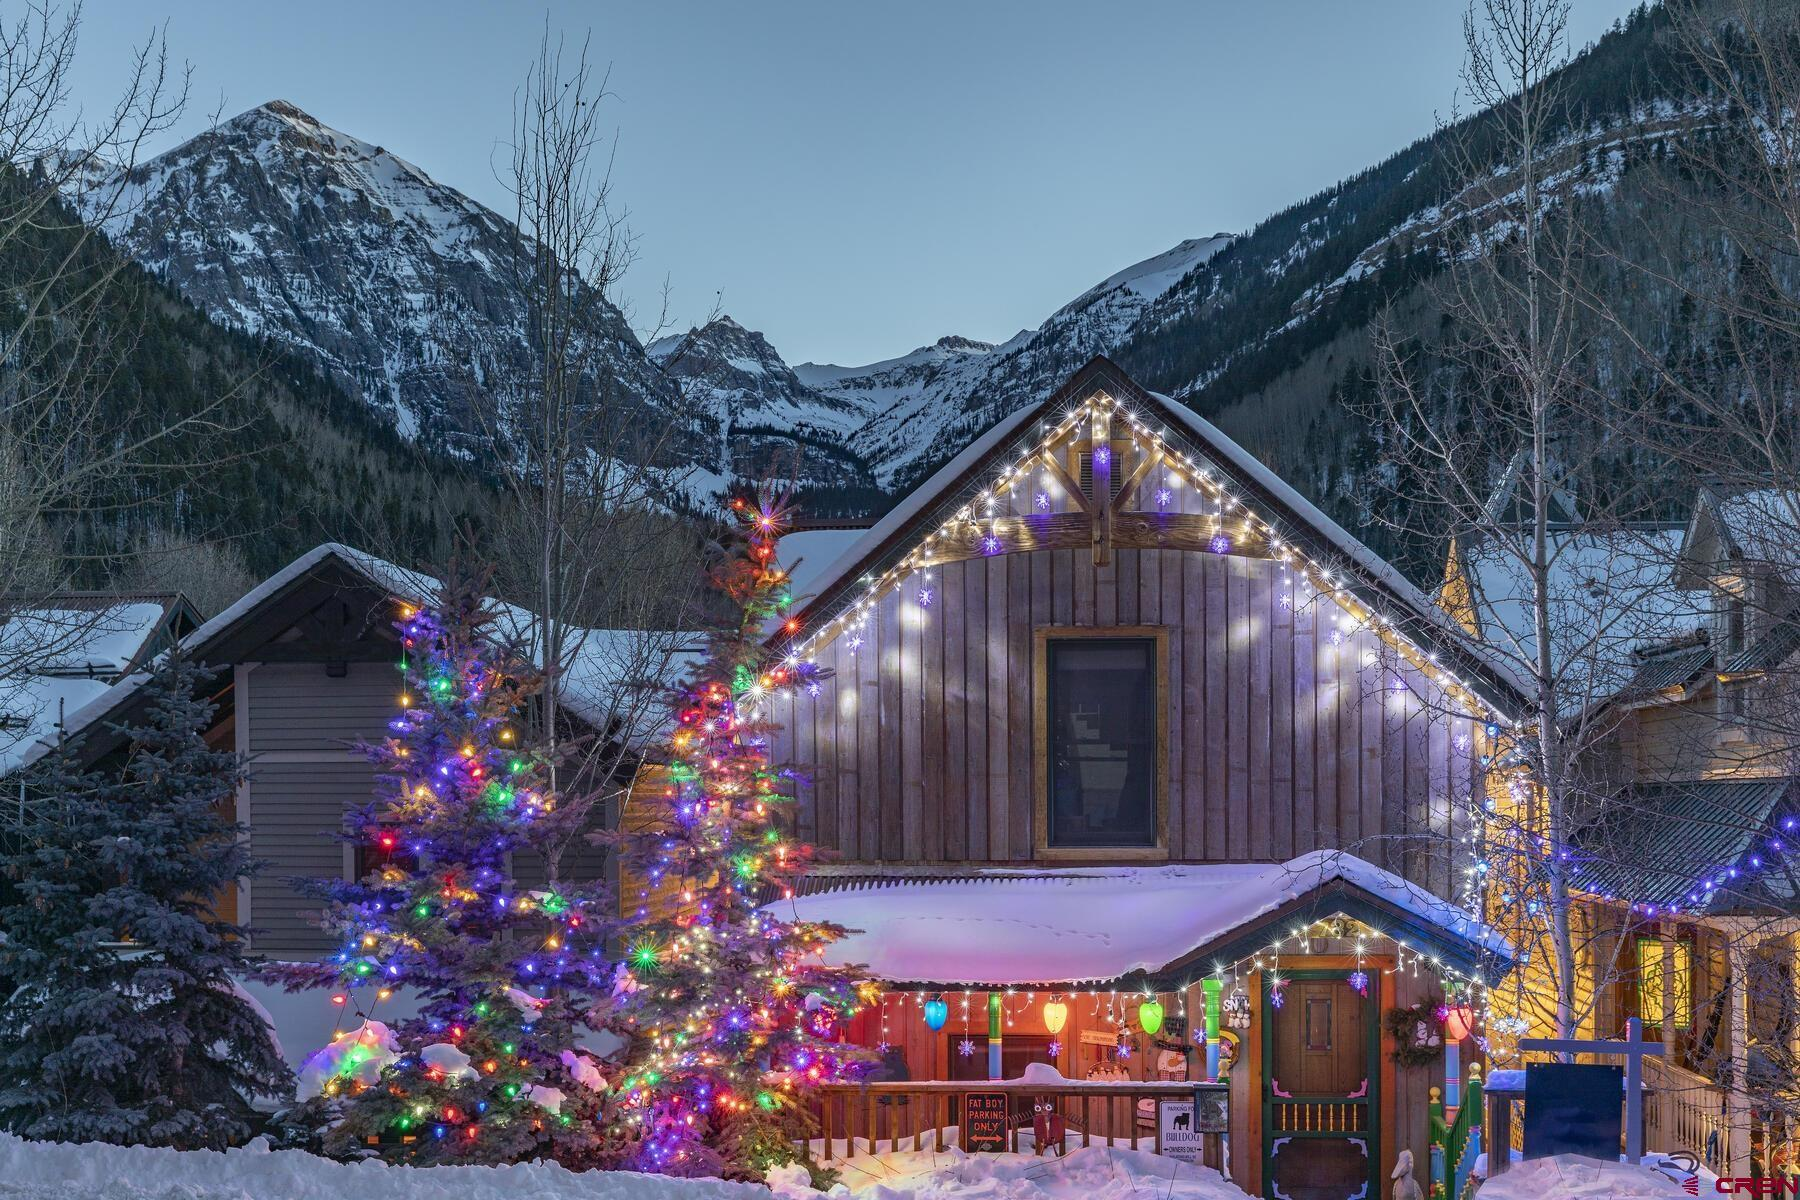 Located in quiet East Telluride, this sun splashed five bedroom and two bath residence represents a wonderful opportunity to call the town of Telluride home, whether for a few weeks per year or a lifetime.  Big views of Bear Creek and Coonskin area of the Telluride Ski Resort.   The lower level features a garage, alley entrance, one bedroom, one bath and flex space currently used as a game room.   The great room, one bedroom and large south facing deck sit on Columbia Street level. The master suite and two additional bedrooms are on the third level.  A local contractor built the home for his family, so even the most discerning Buyer will notice the quality of construction.  Designed by longtime local architect, George Greenbank.  A short walk or free Galloping Goose ride to all of the amenities of Telluride Town Park, including the famed music and film festivals as well as the fine restaurant scene.  Live in the home, while you design a new interior for many future years of enjoyment.